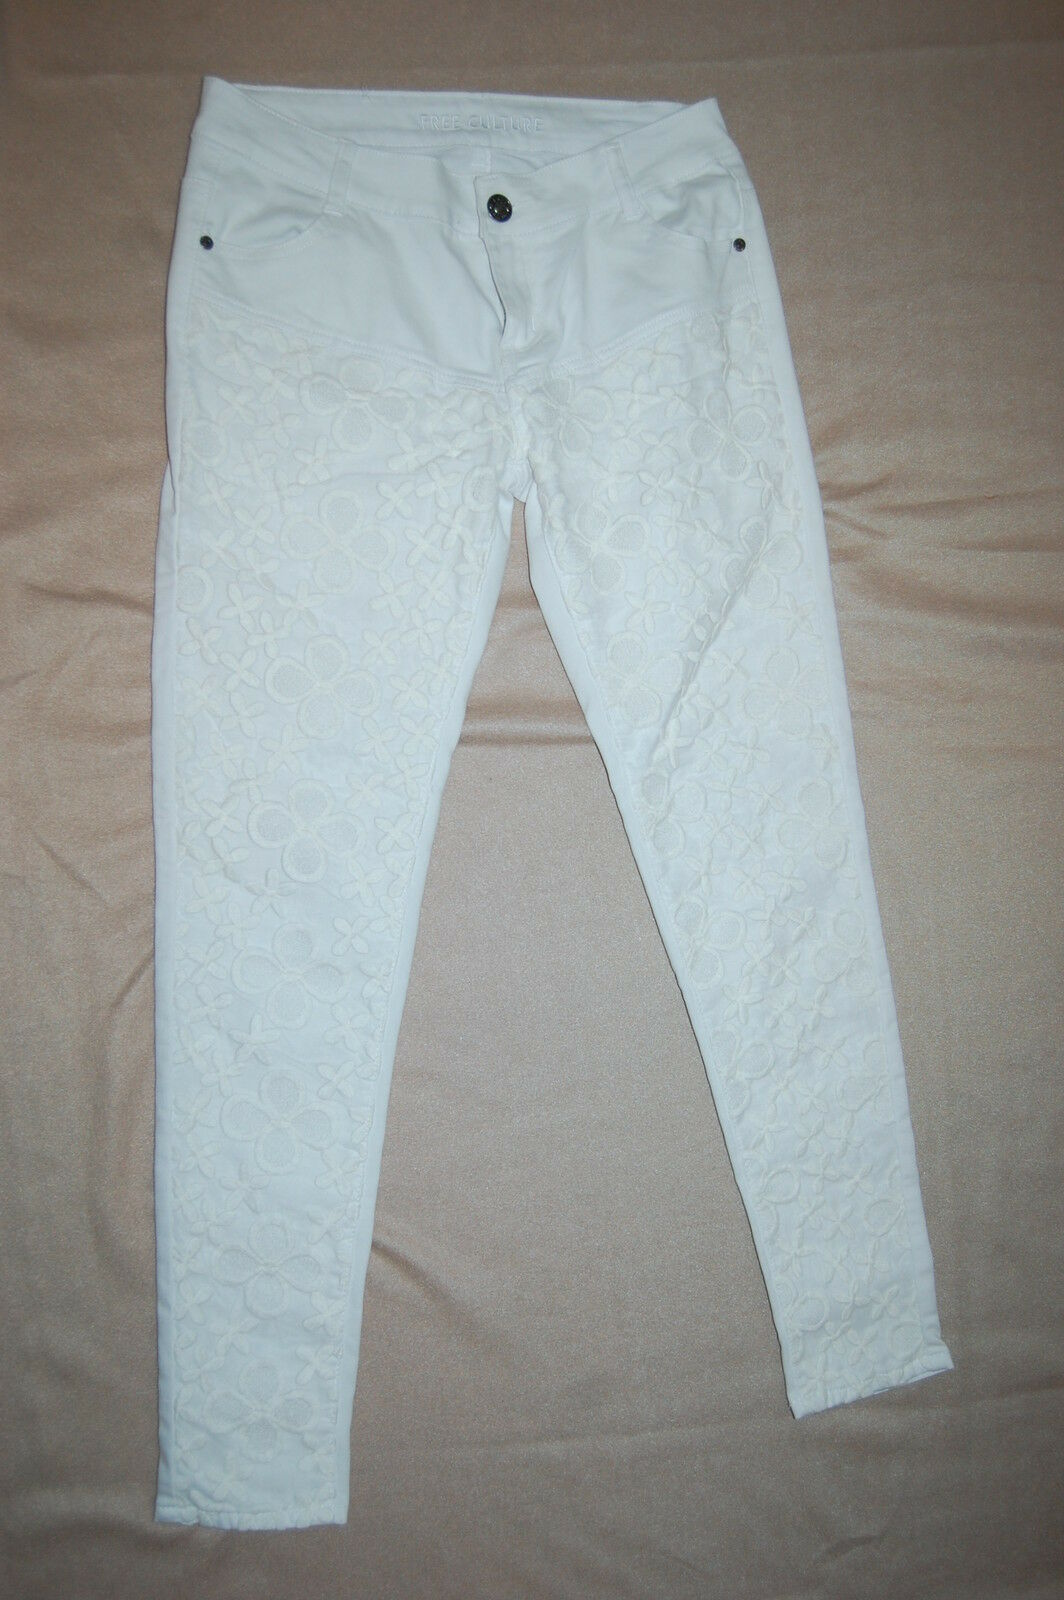 JR Womens Pants WHITE SKINNY JEANS Lace Overlay Legs FREE CULTURE Denim SIZE 9